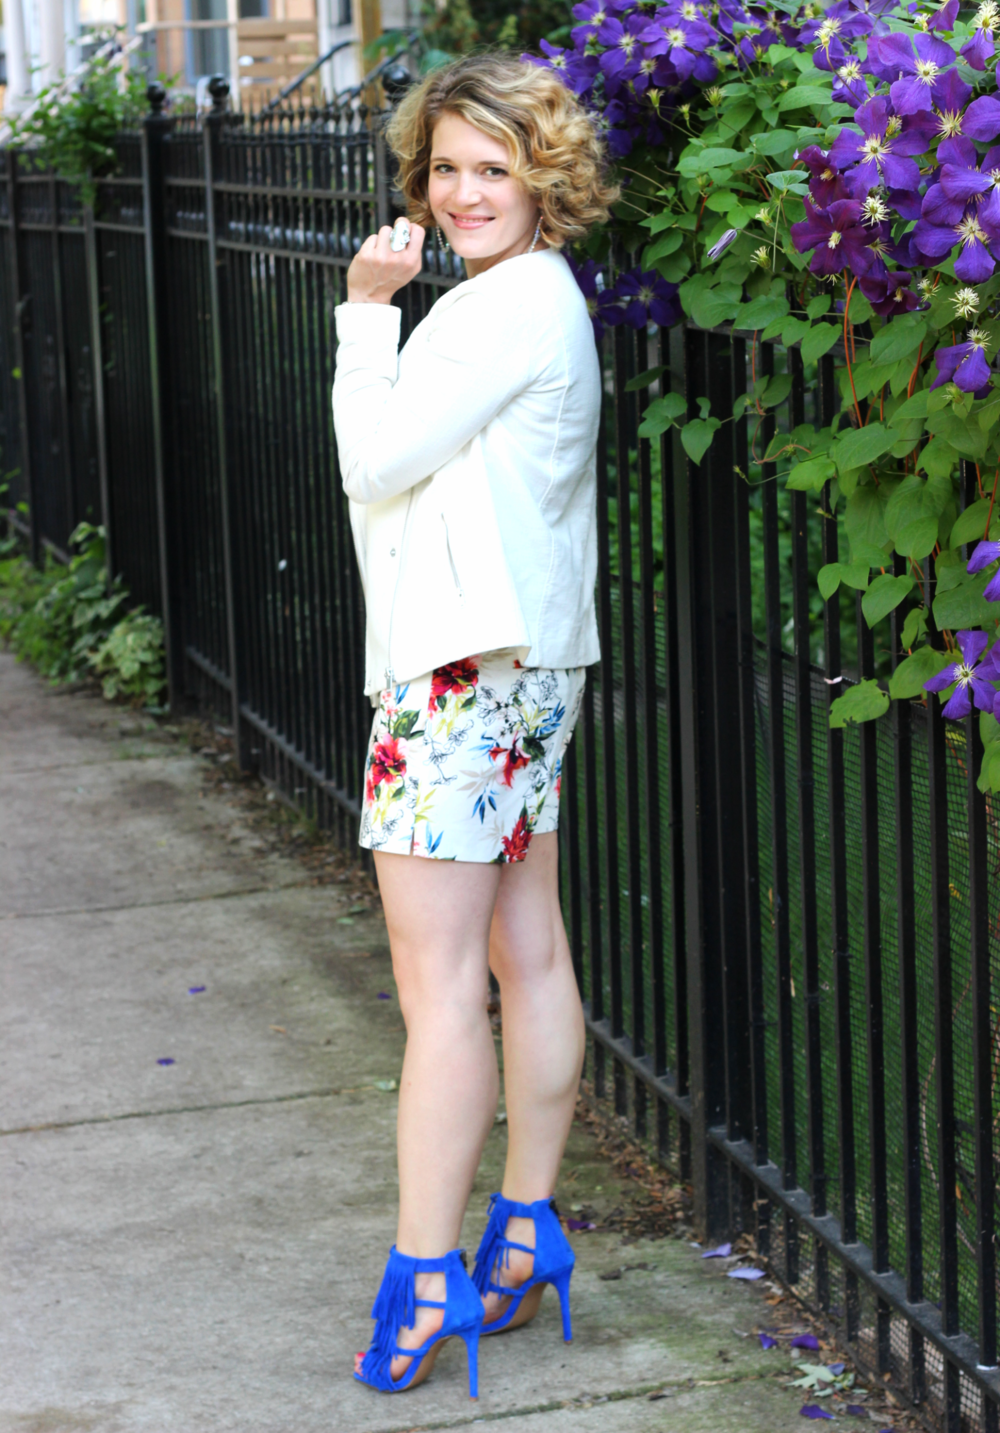 shorts with heels on belle meets world blot